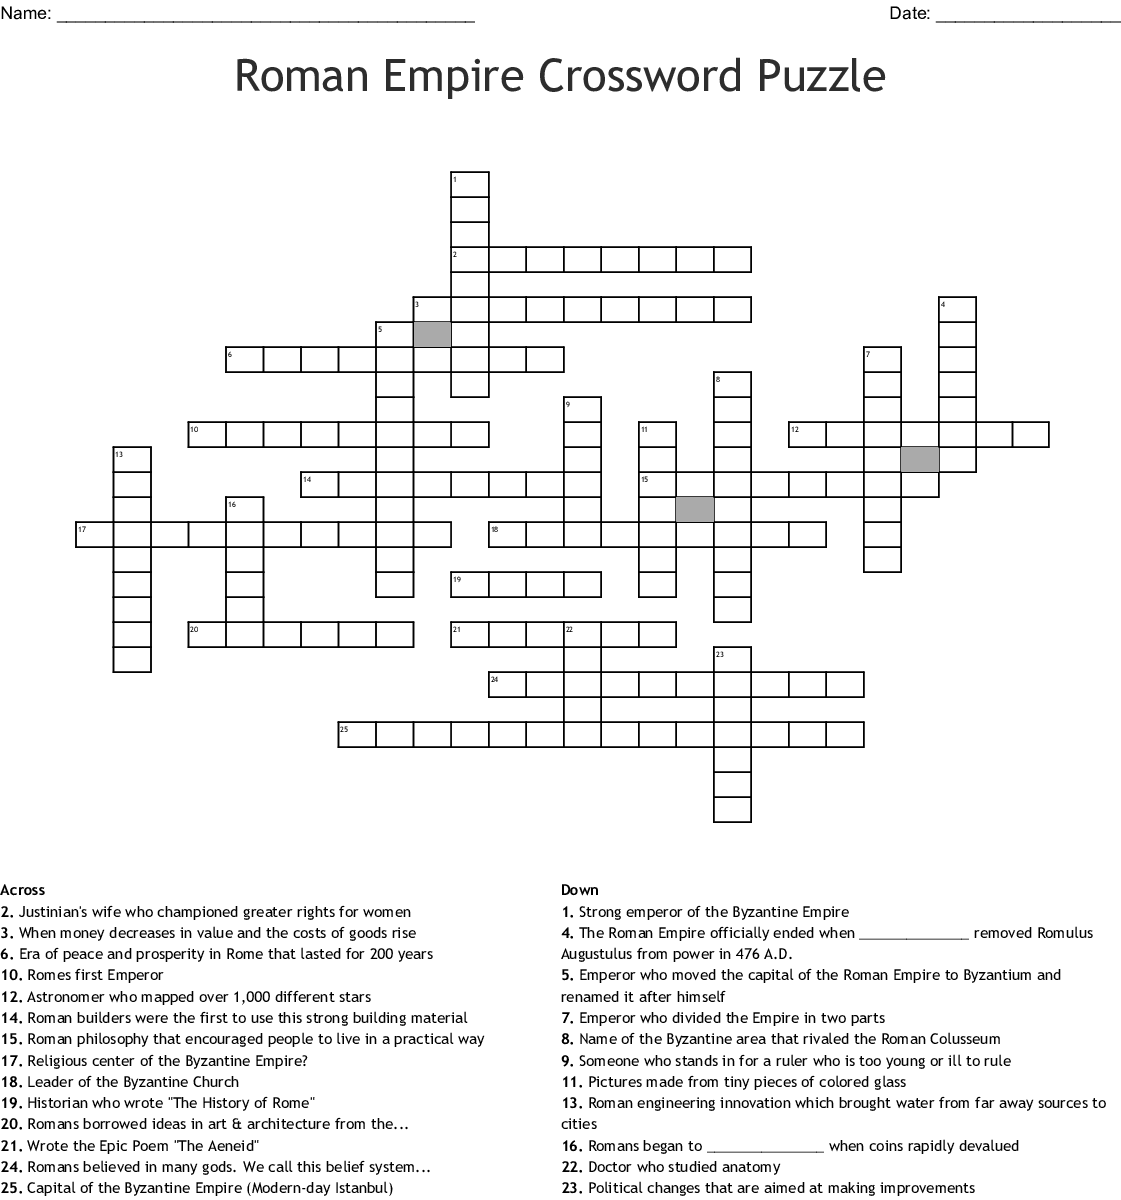 Roman Empire Crossword Puzzle